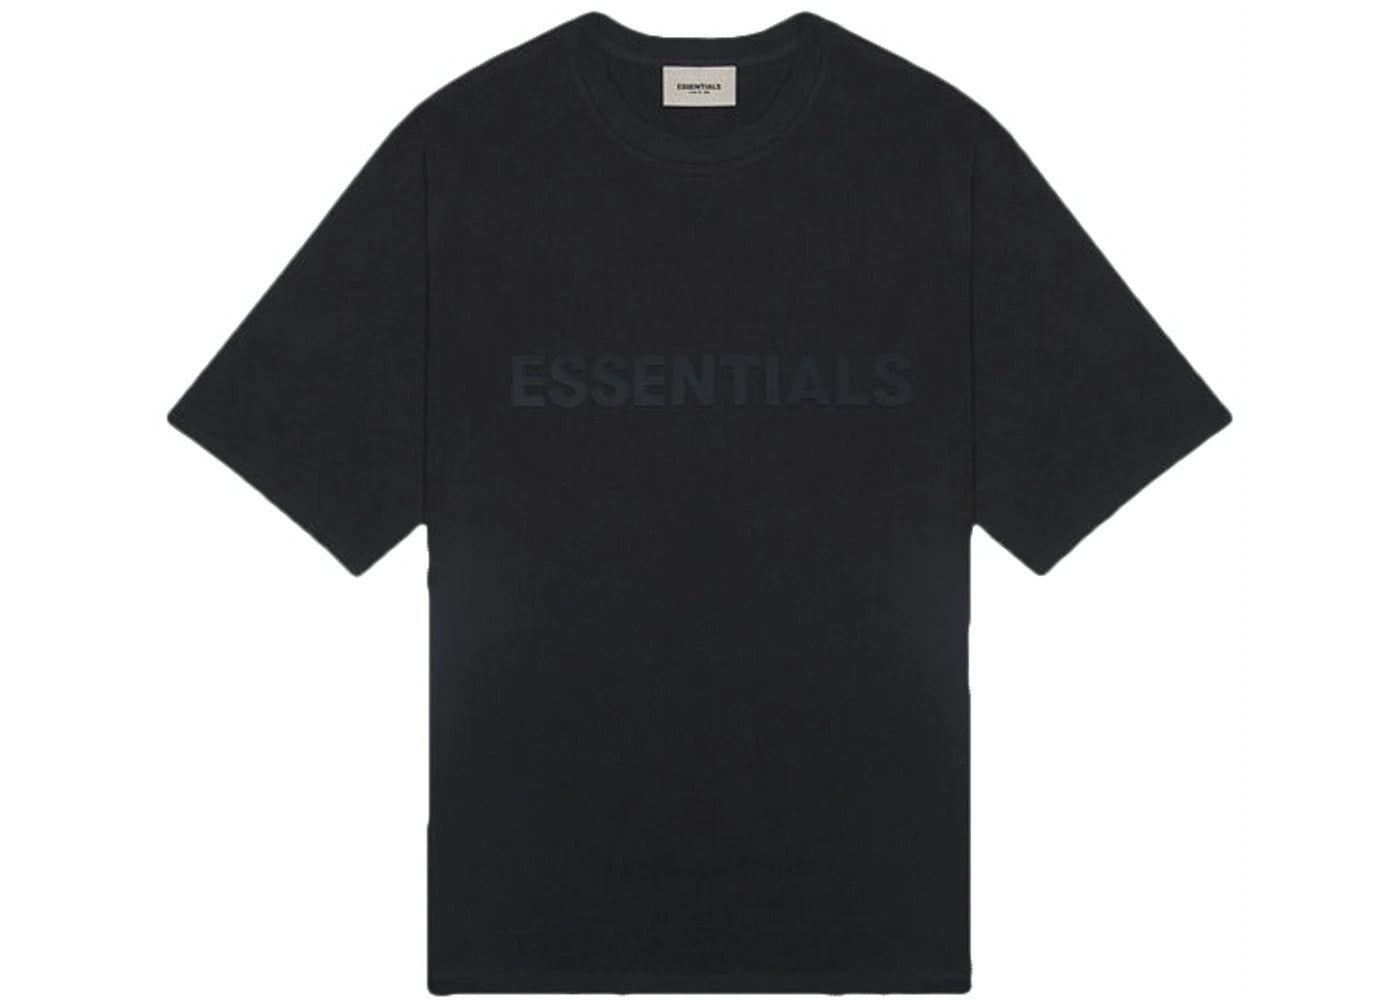 Essentials Black on Washed Black Logo Tee